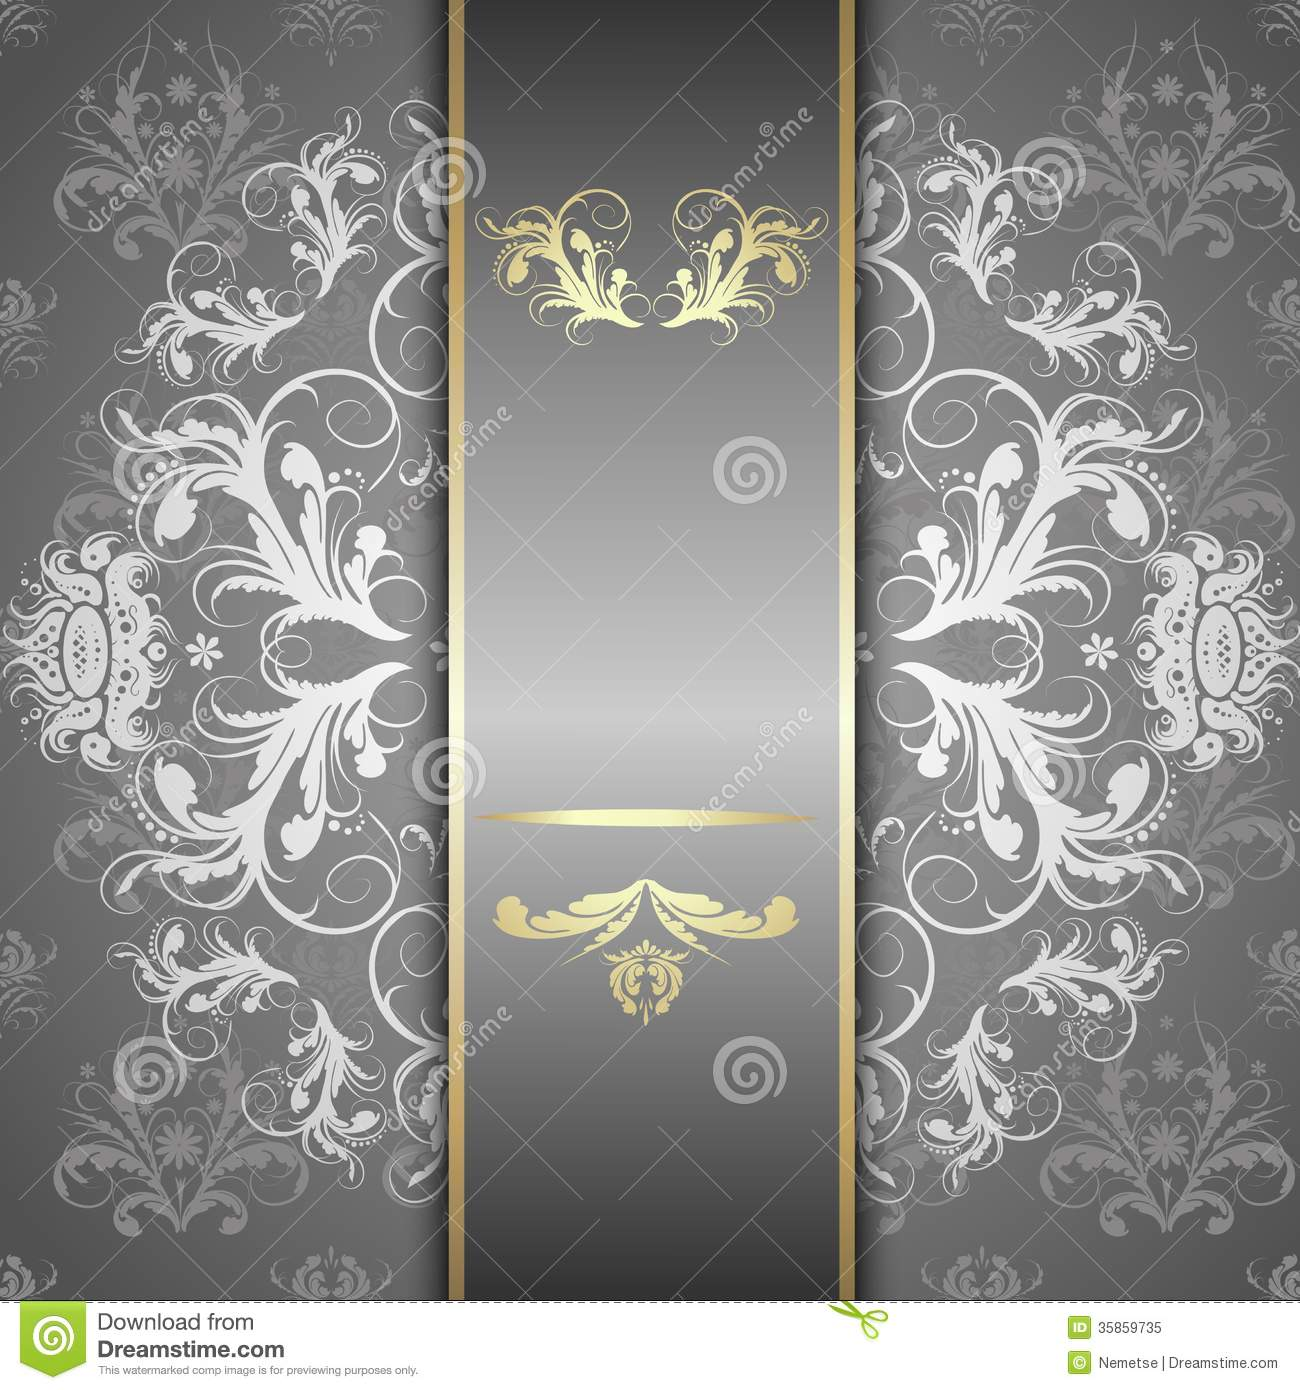 silver pattern on a beautiful background stock vector - illustration